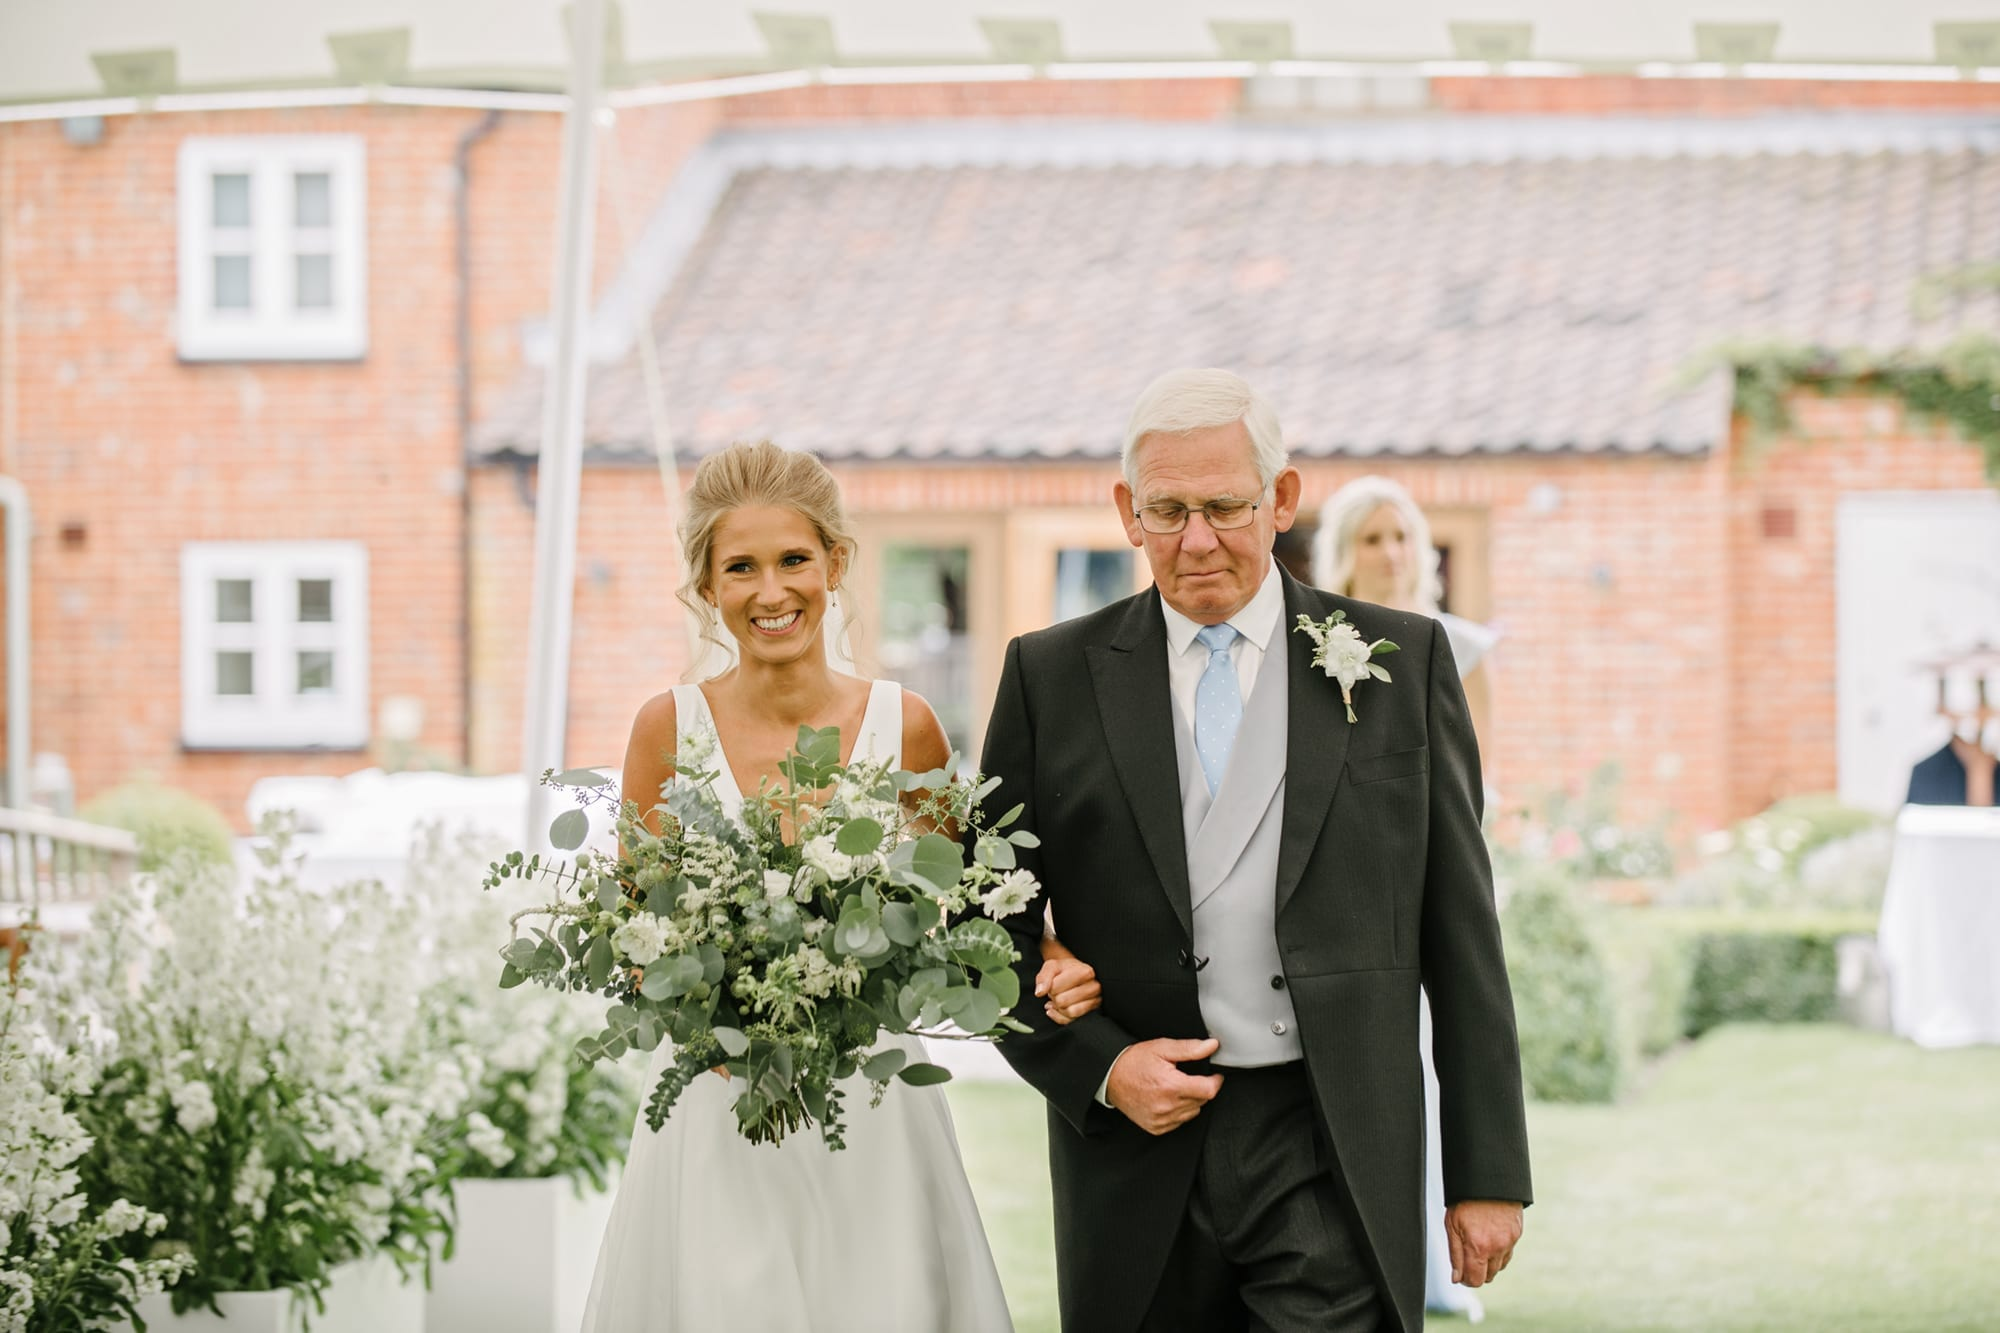 Bride with Father walking down the aisle for wedding ceremony